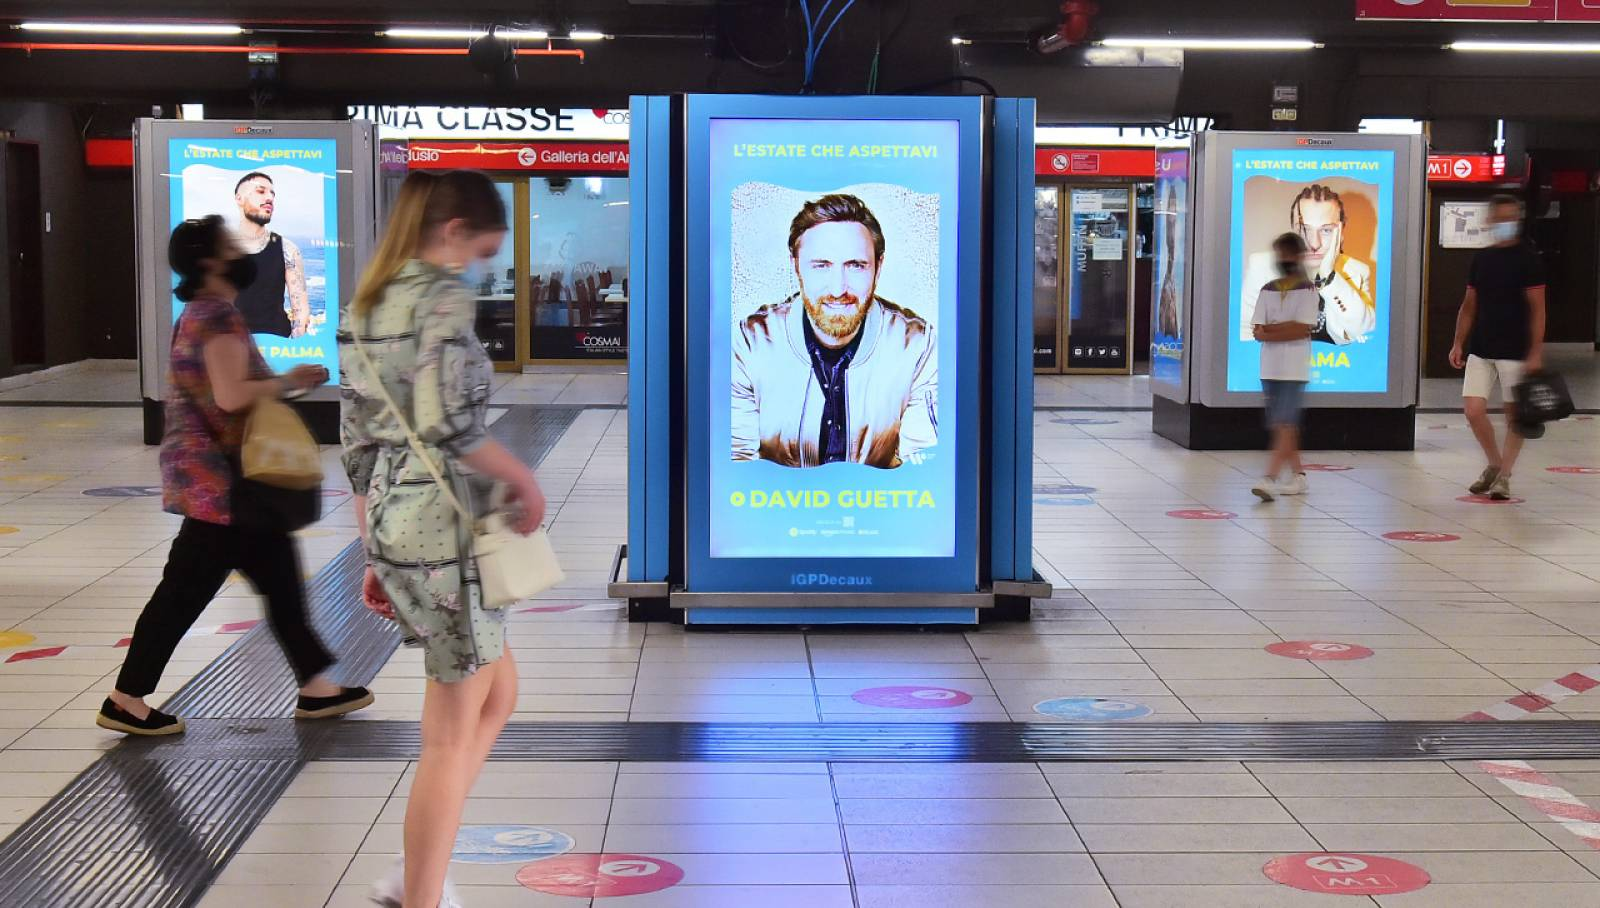 IGPDecaux OOH advertising in metropolitana Station Domination a Milano per Warner Music Italy